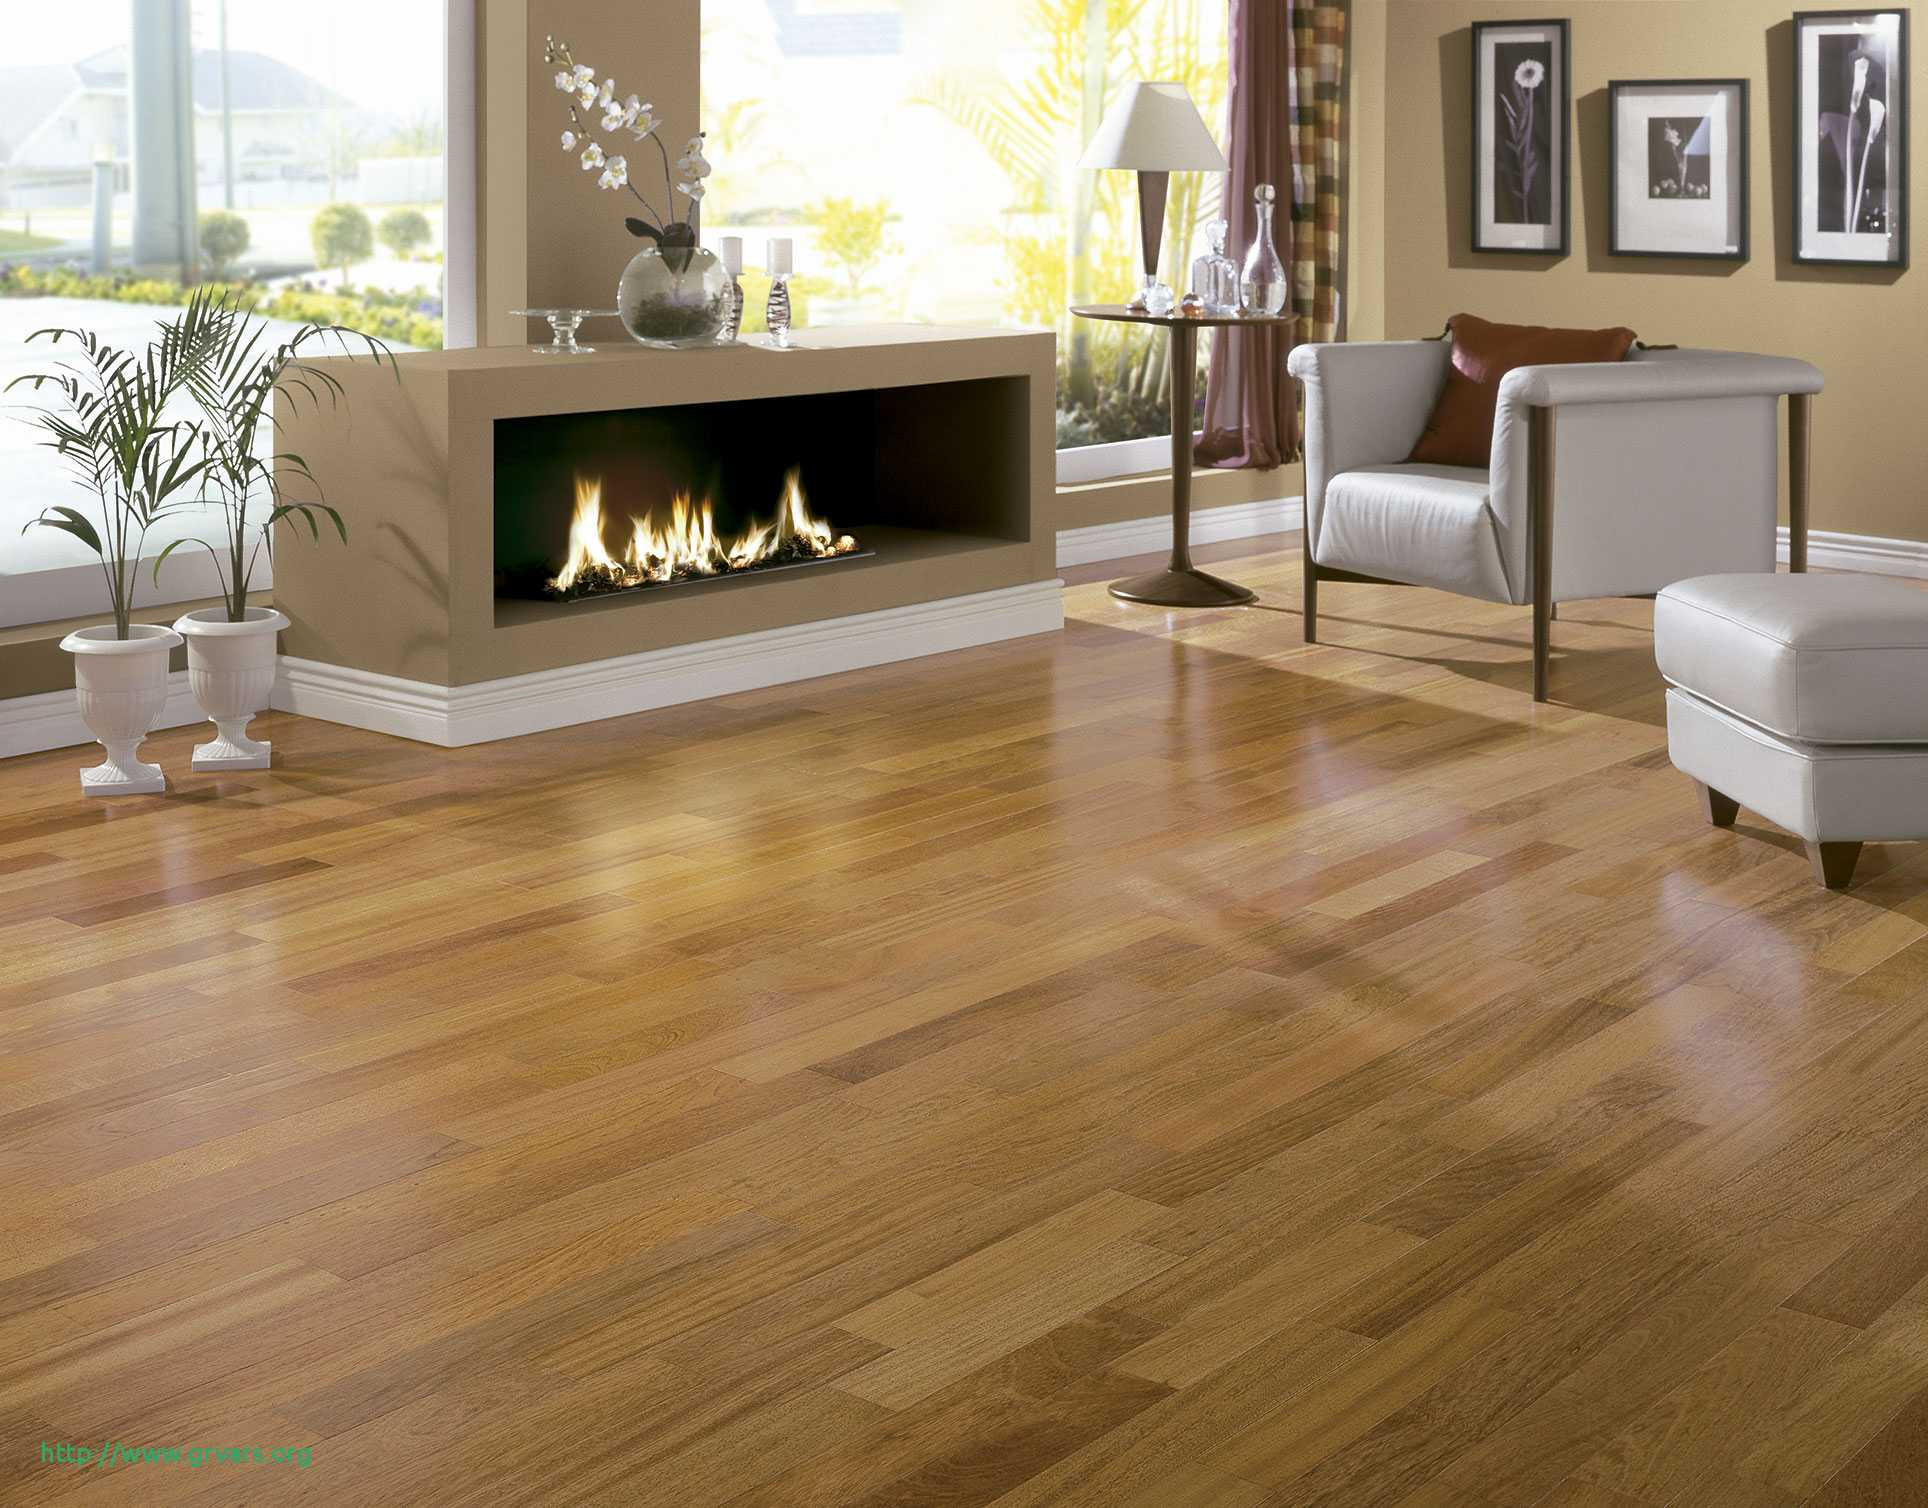 ash hardwood flooring prices of fore wood floors frais sandy weathered oak flooring 1200 1196 casa inside fore wood floors charmant engaging discount hardwood flooring 5 where to buy inspirational 0d